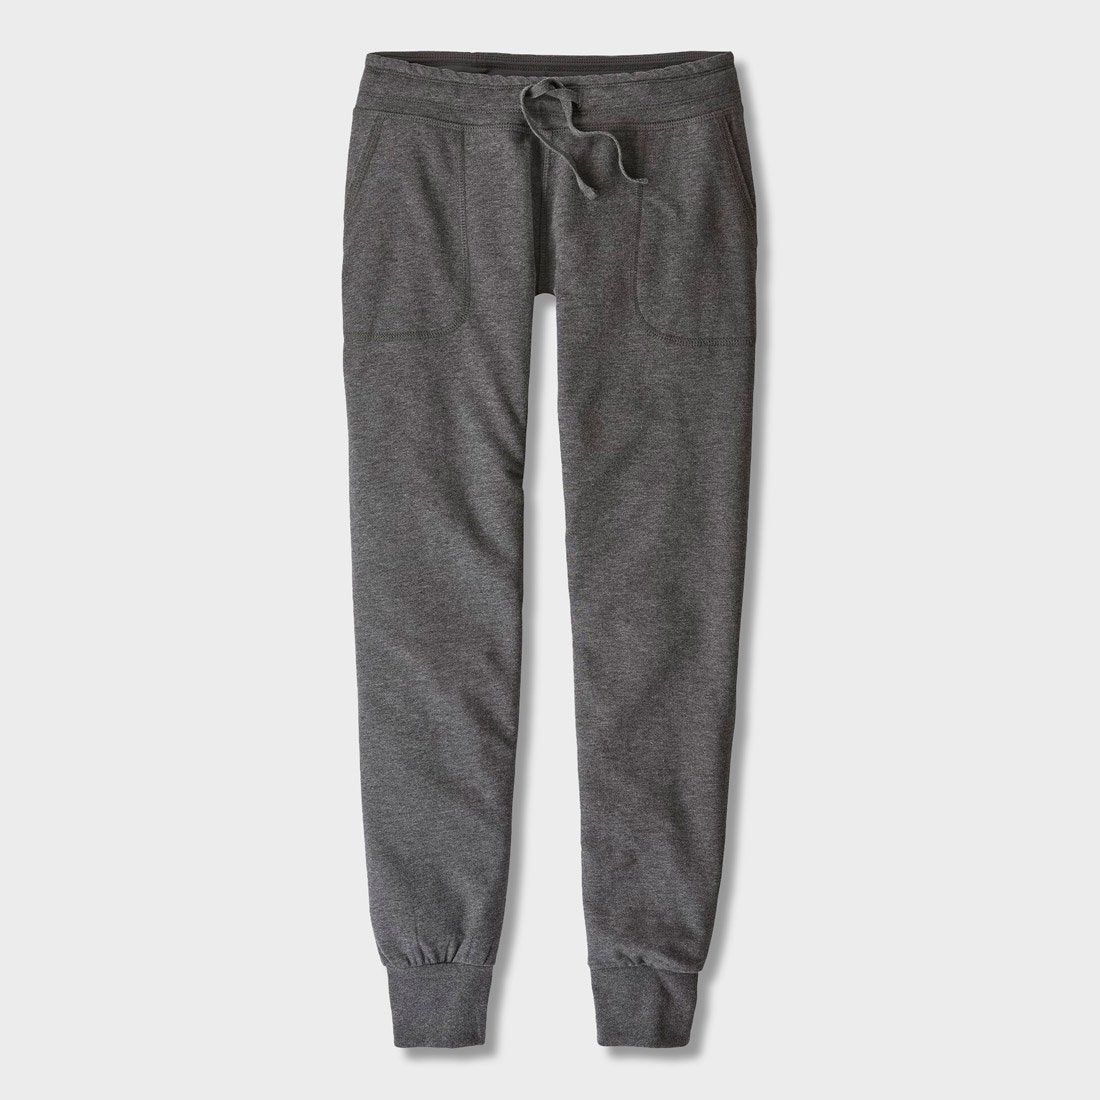 Patagonia Women's Ahnya Pants Forge Grey